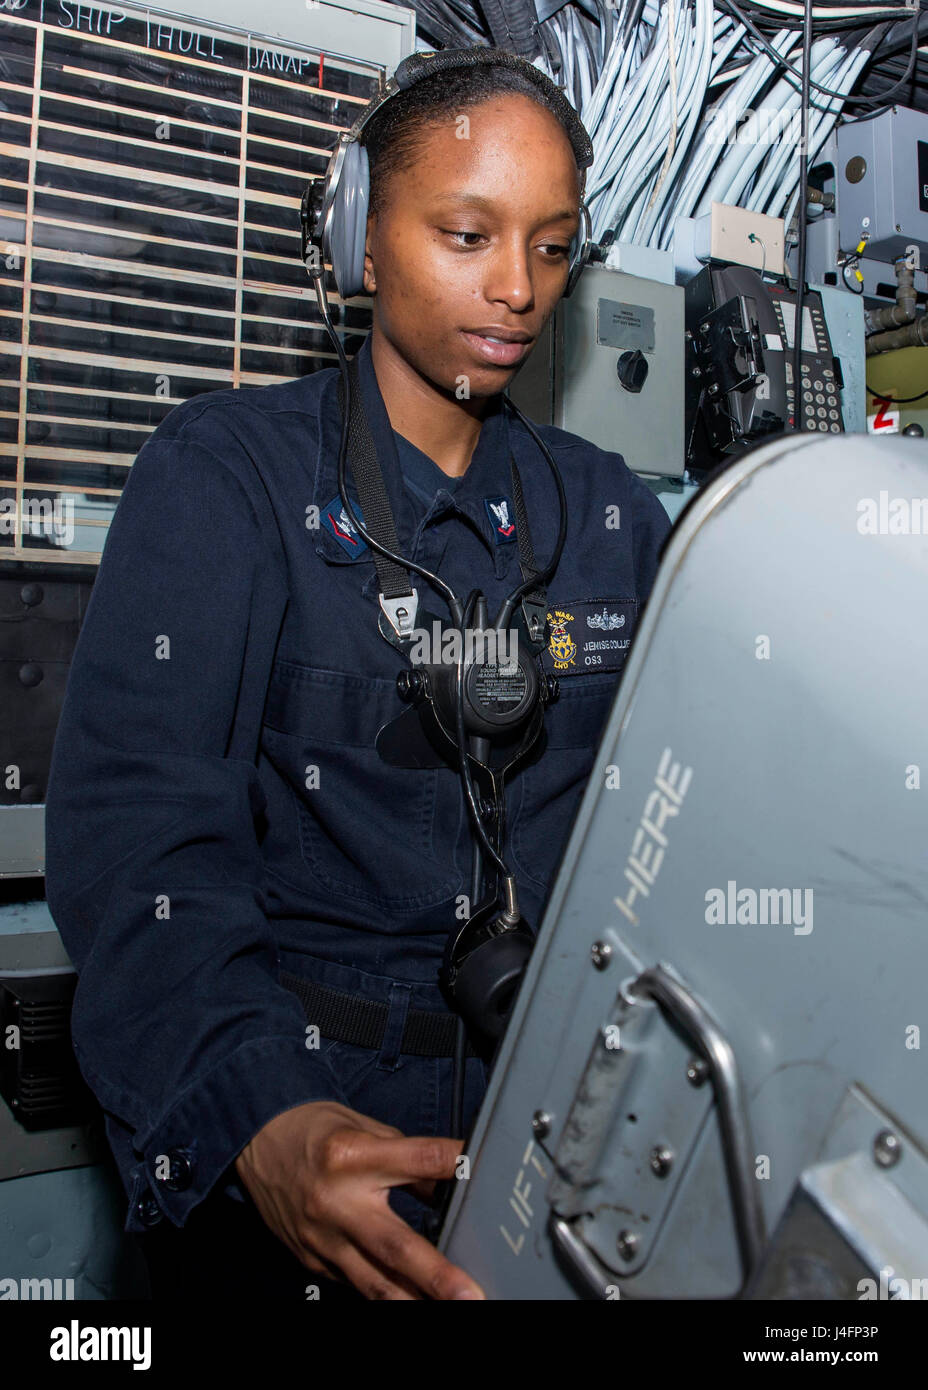 160701-N-TO519-047 ATLANTIC OCEAN (July 1, 2016) Operations Specialist 3rd Class Jenise Collier monitors a radar - Stock Image